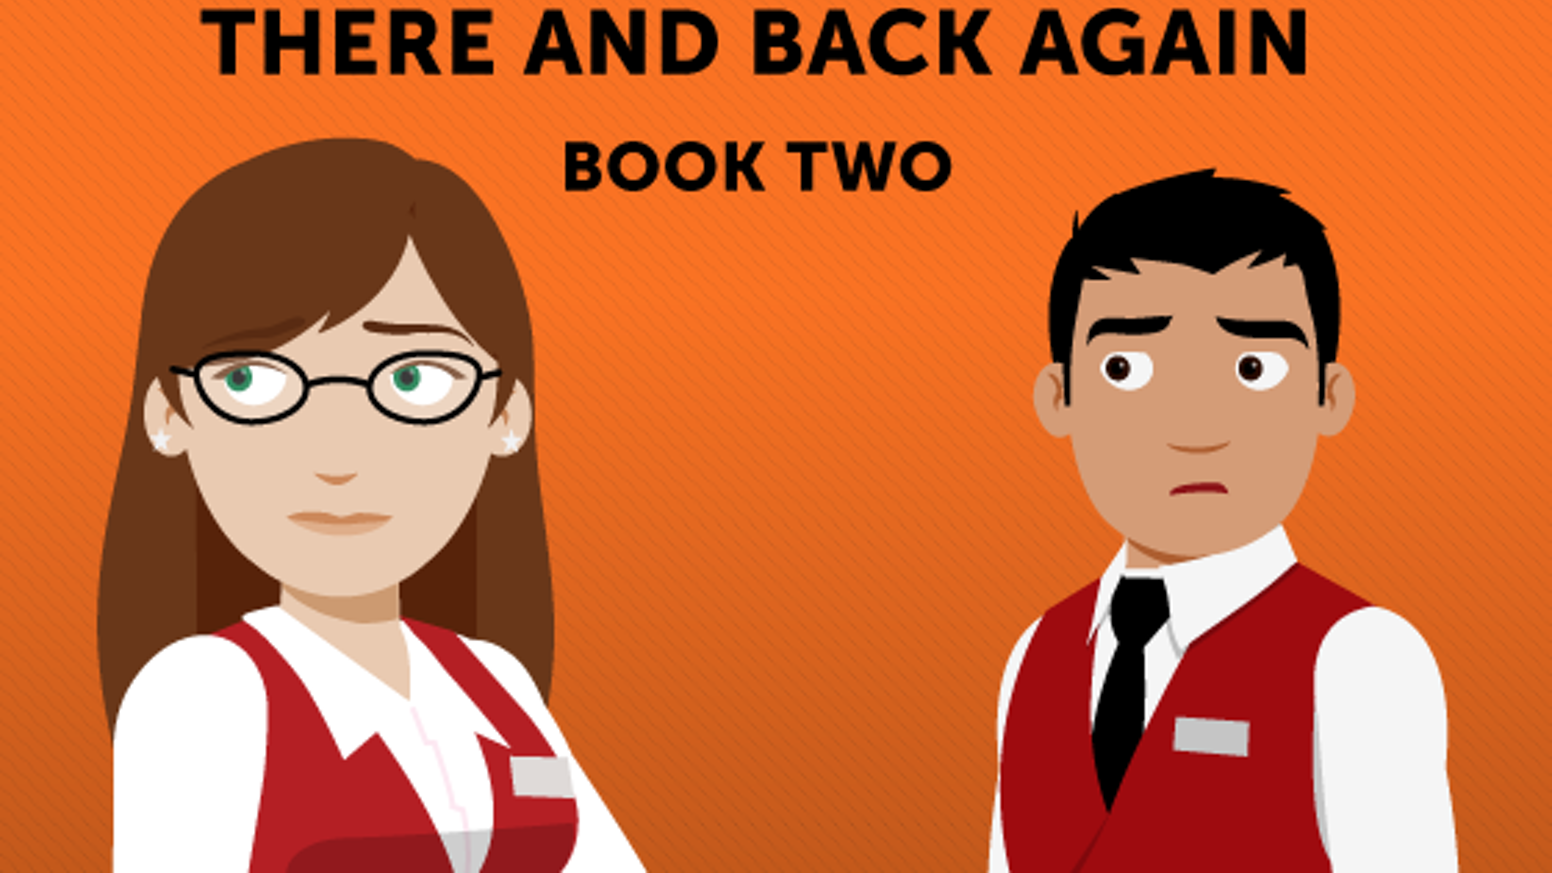 Help fund the creation and publication of Multiplex: There and Back Again (Book 2) — and if we pass our goal, Book 3, as well!